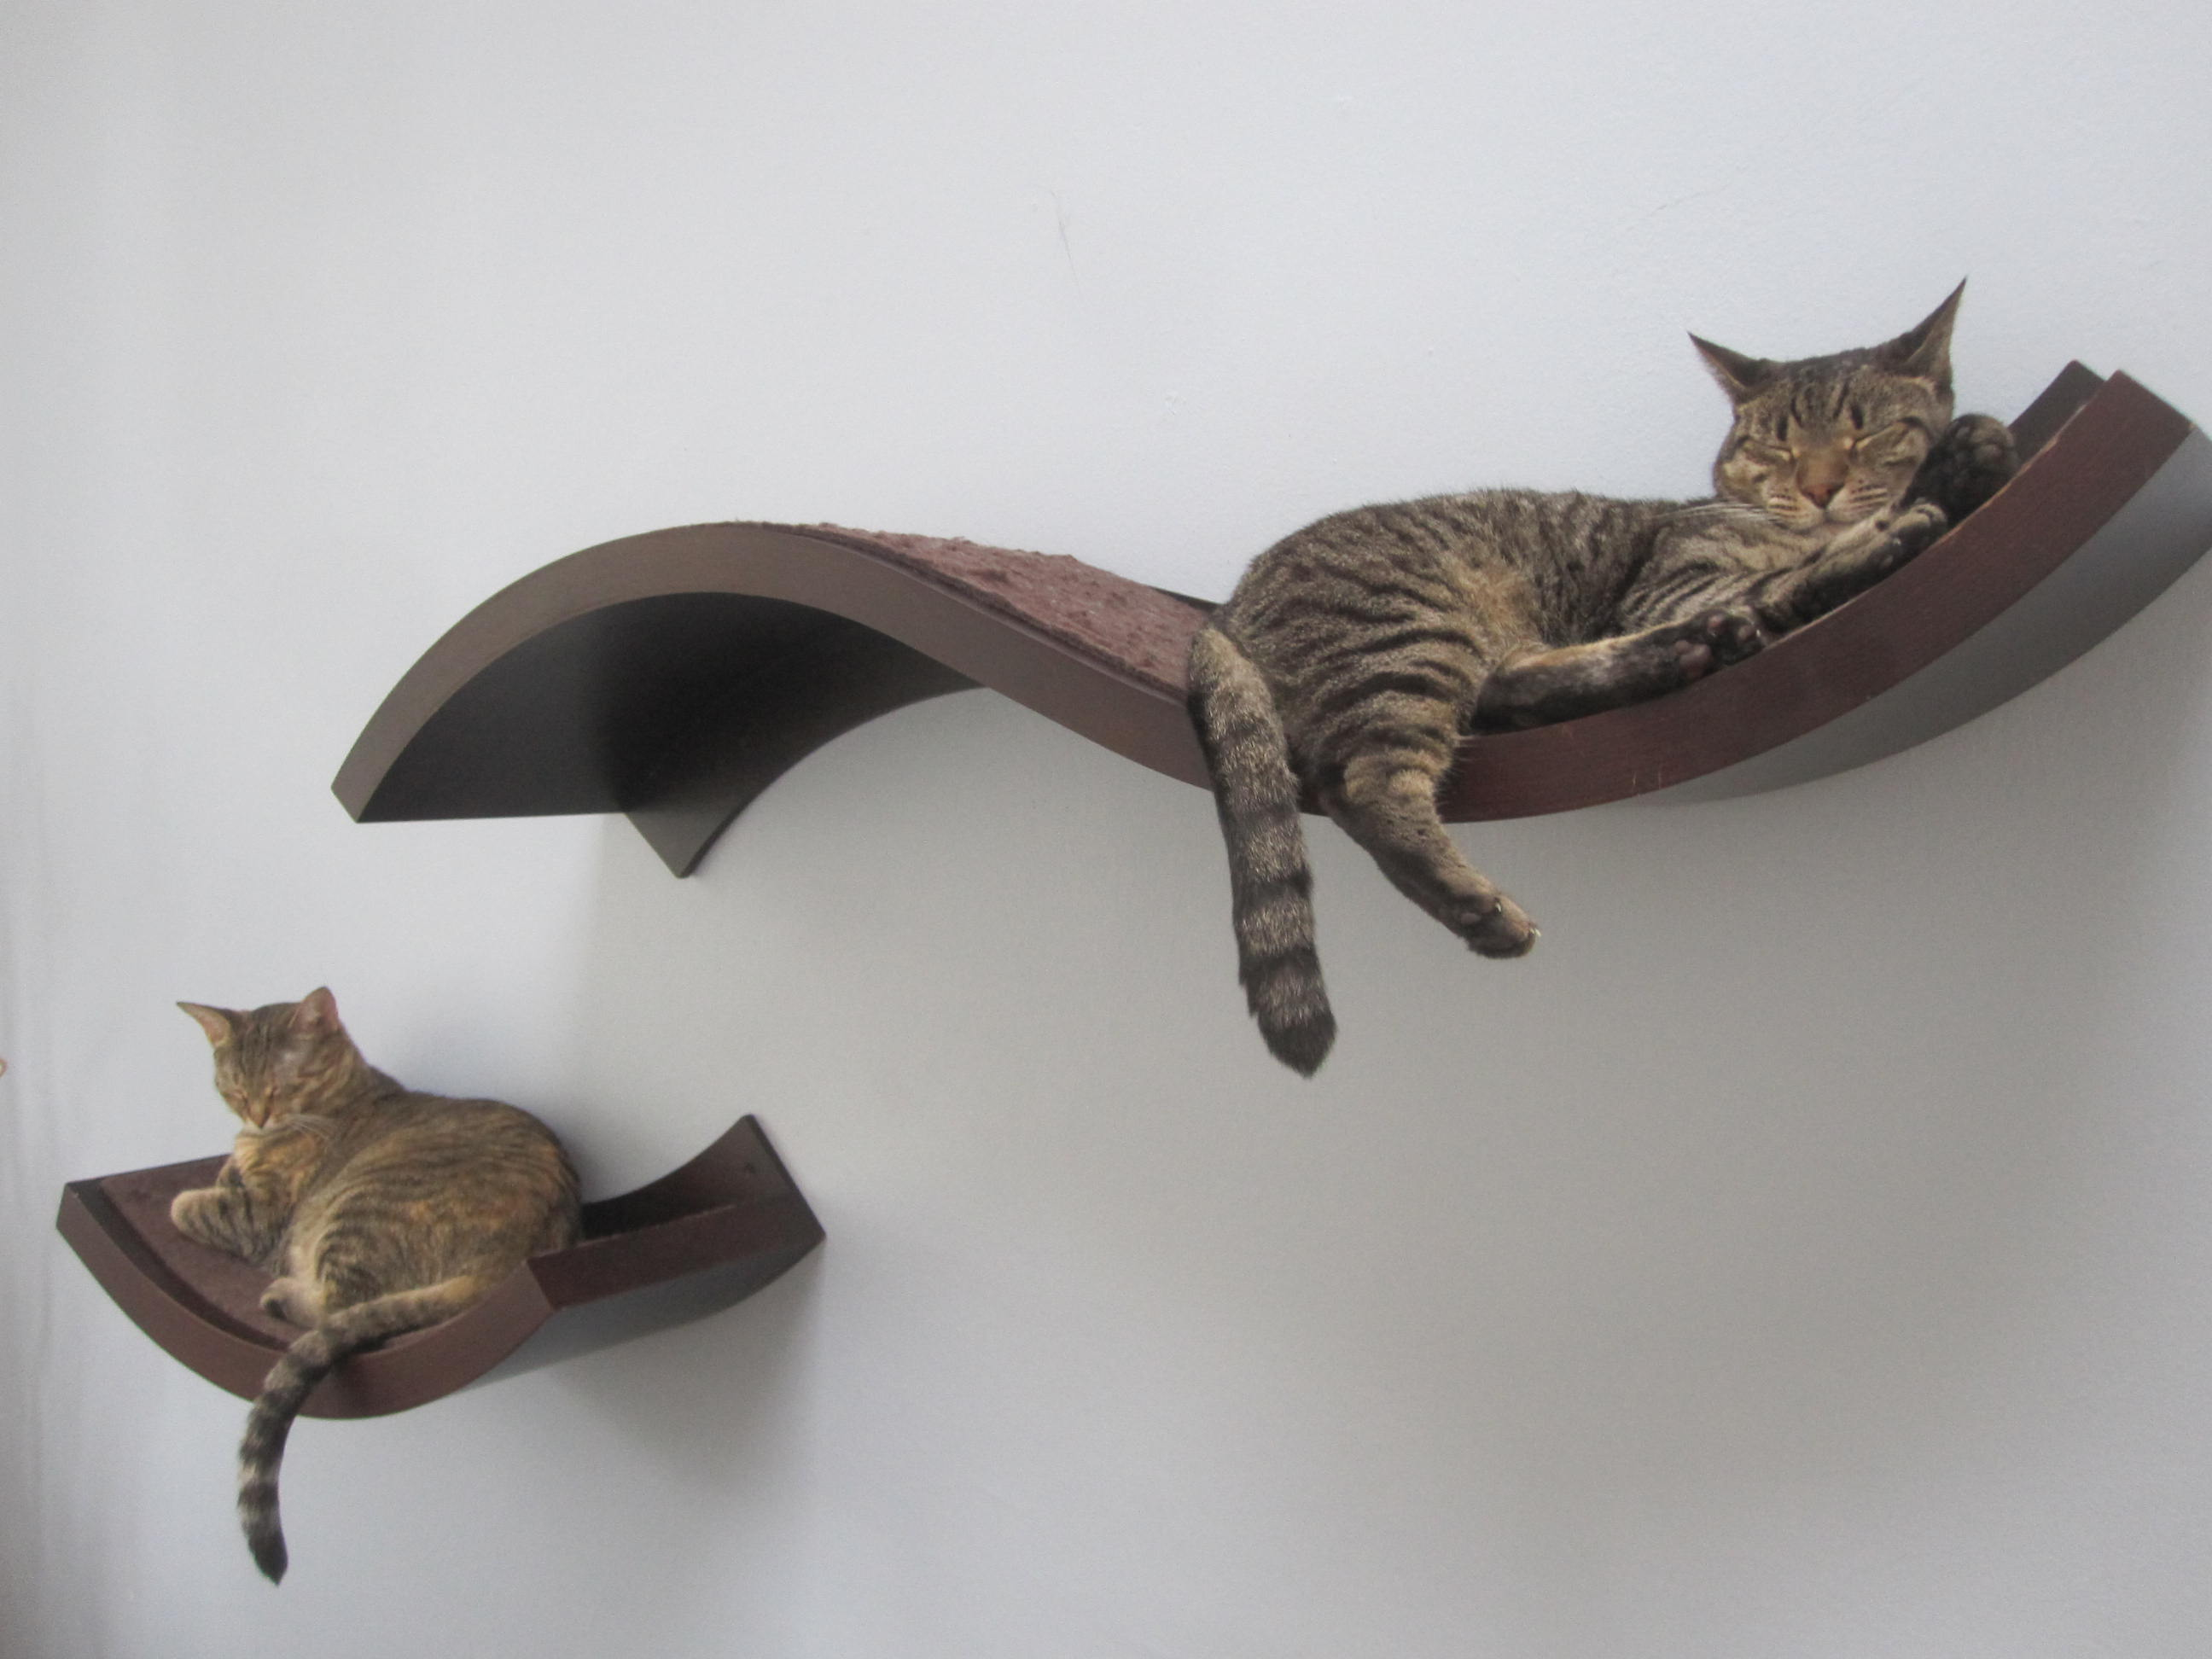 Modern Cat Shelves 11 Tips For A Safe And Stylish Kitty Home I Have Cat